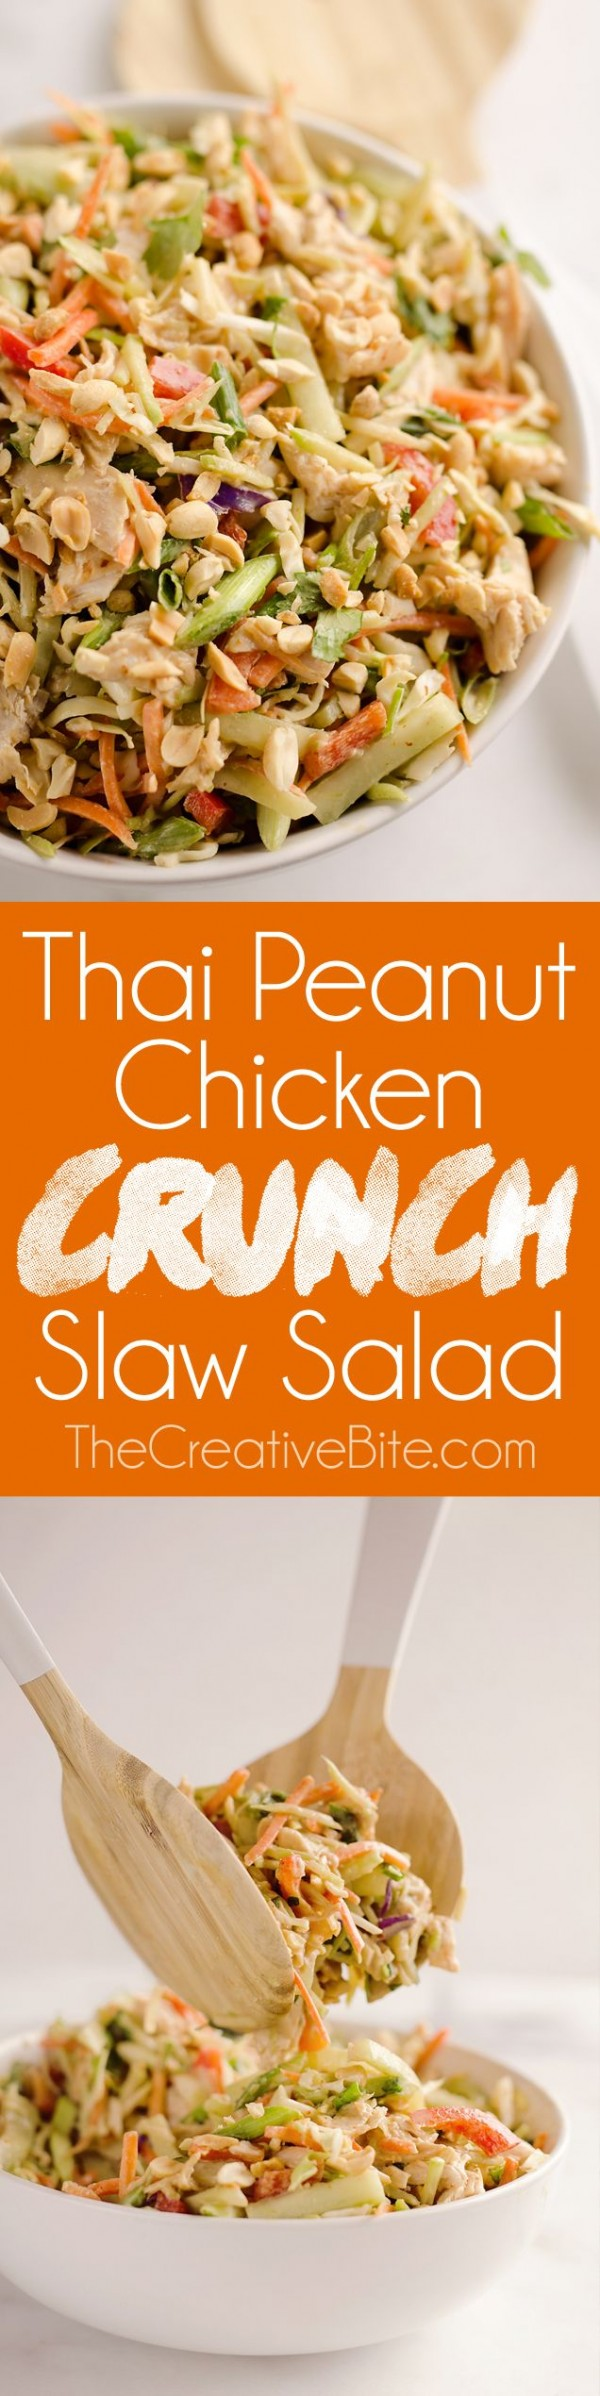 Get the recipe Thai Peanut Chicken Crunch Slaw Salad @recipes_to_go